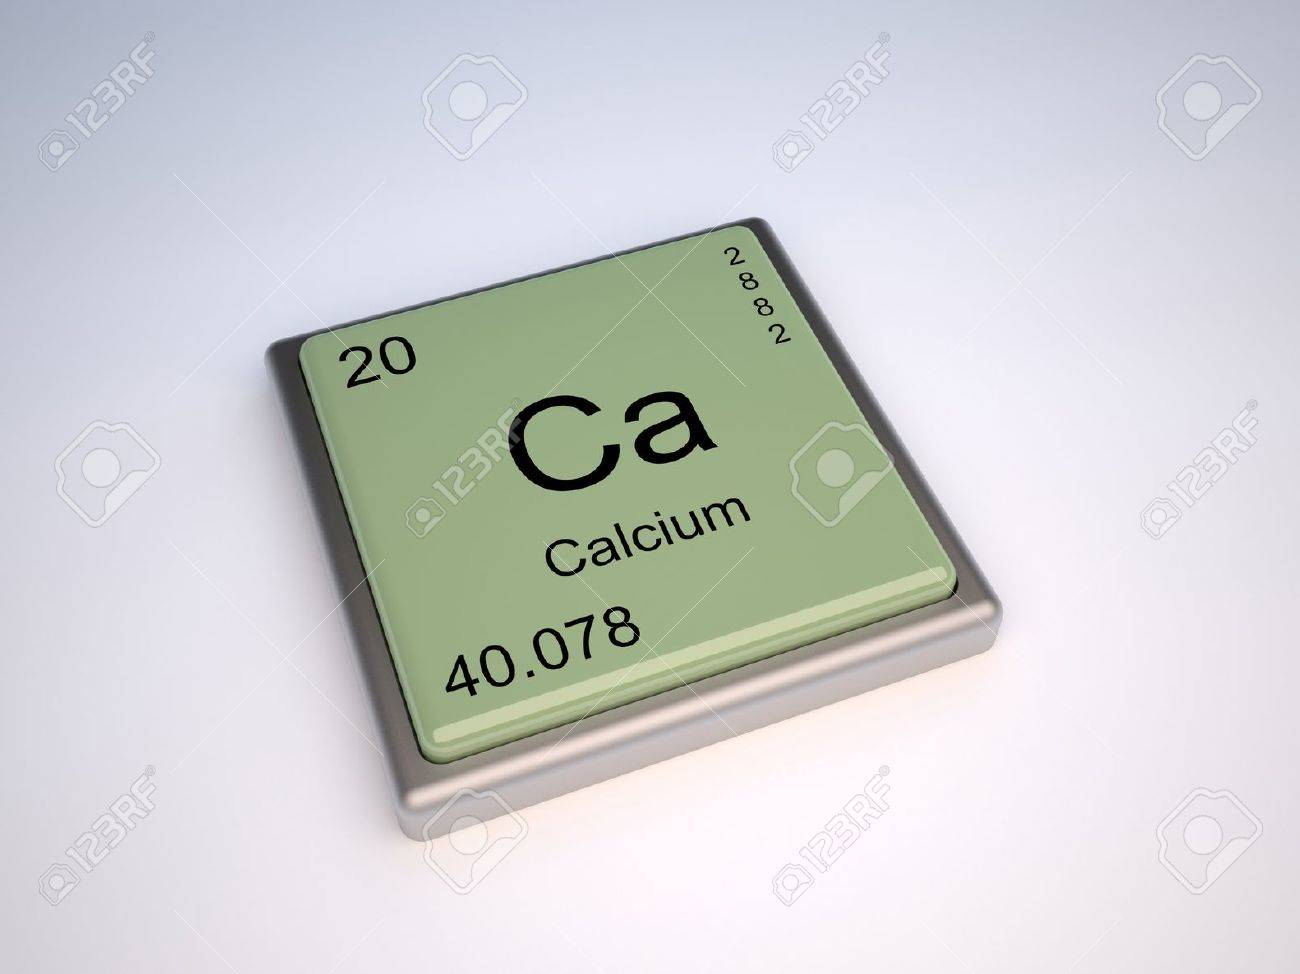 Calcium chemical element of the periodic table with symbol ca calcium chemical element of the periodic table with symbol ca stock photo 9257049 biocorpaavc